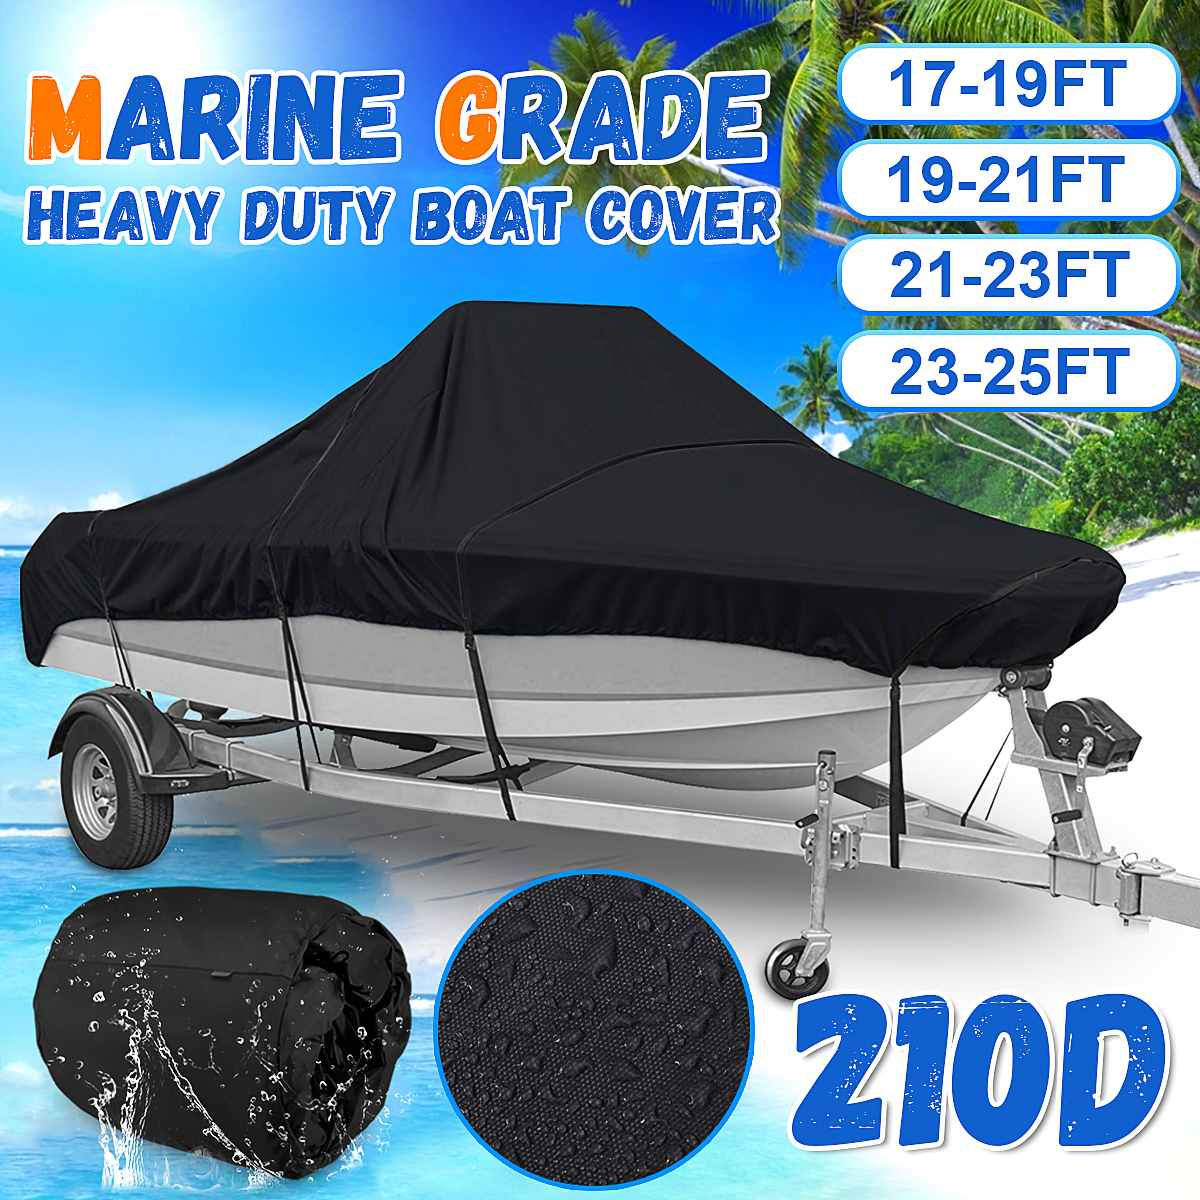 17-25FT Marine Grade 210D Trailerable Boat Cover Waterproof Fish-Ski V-Hull Sunproof UV Protector Boat Mooring Cover